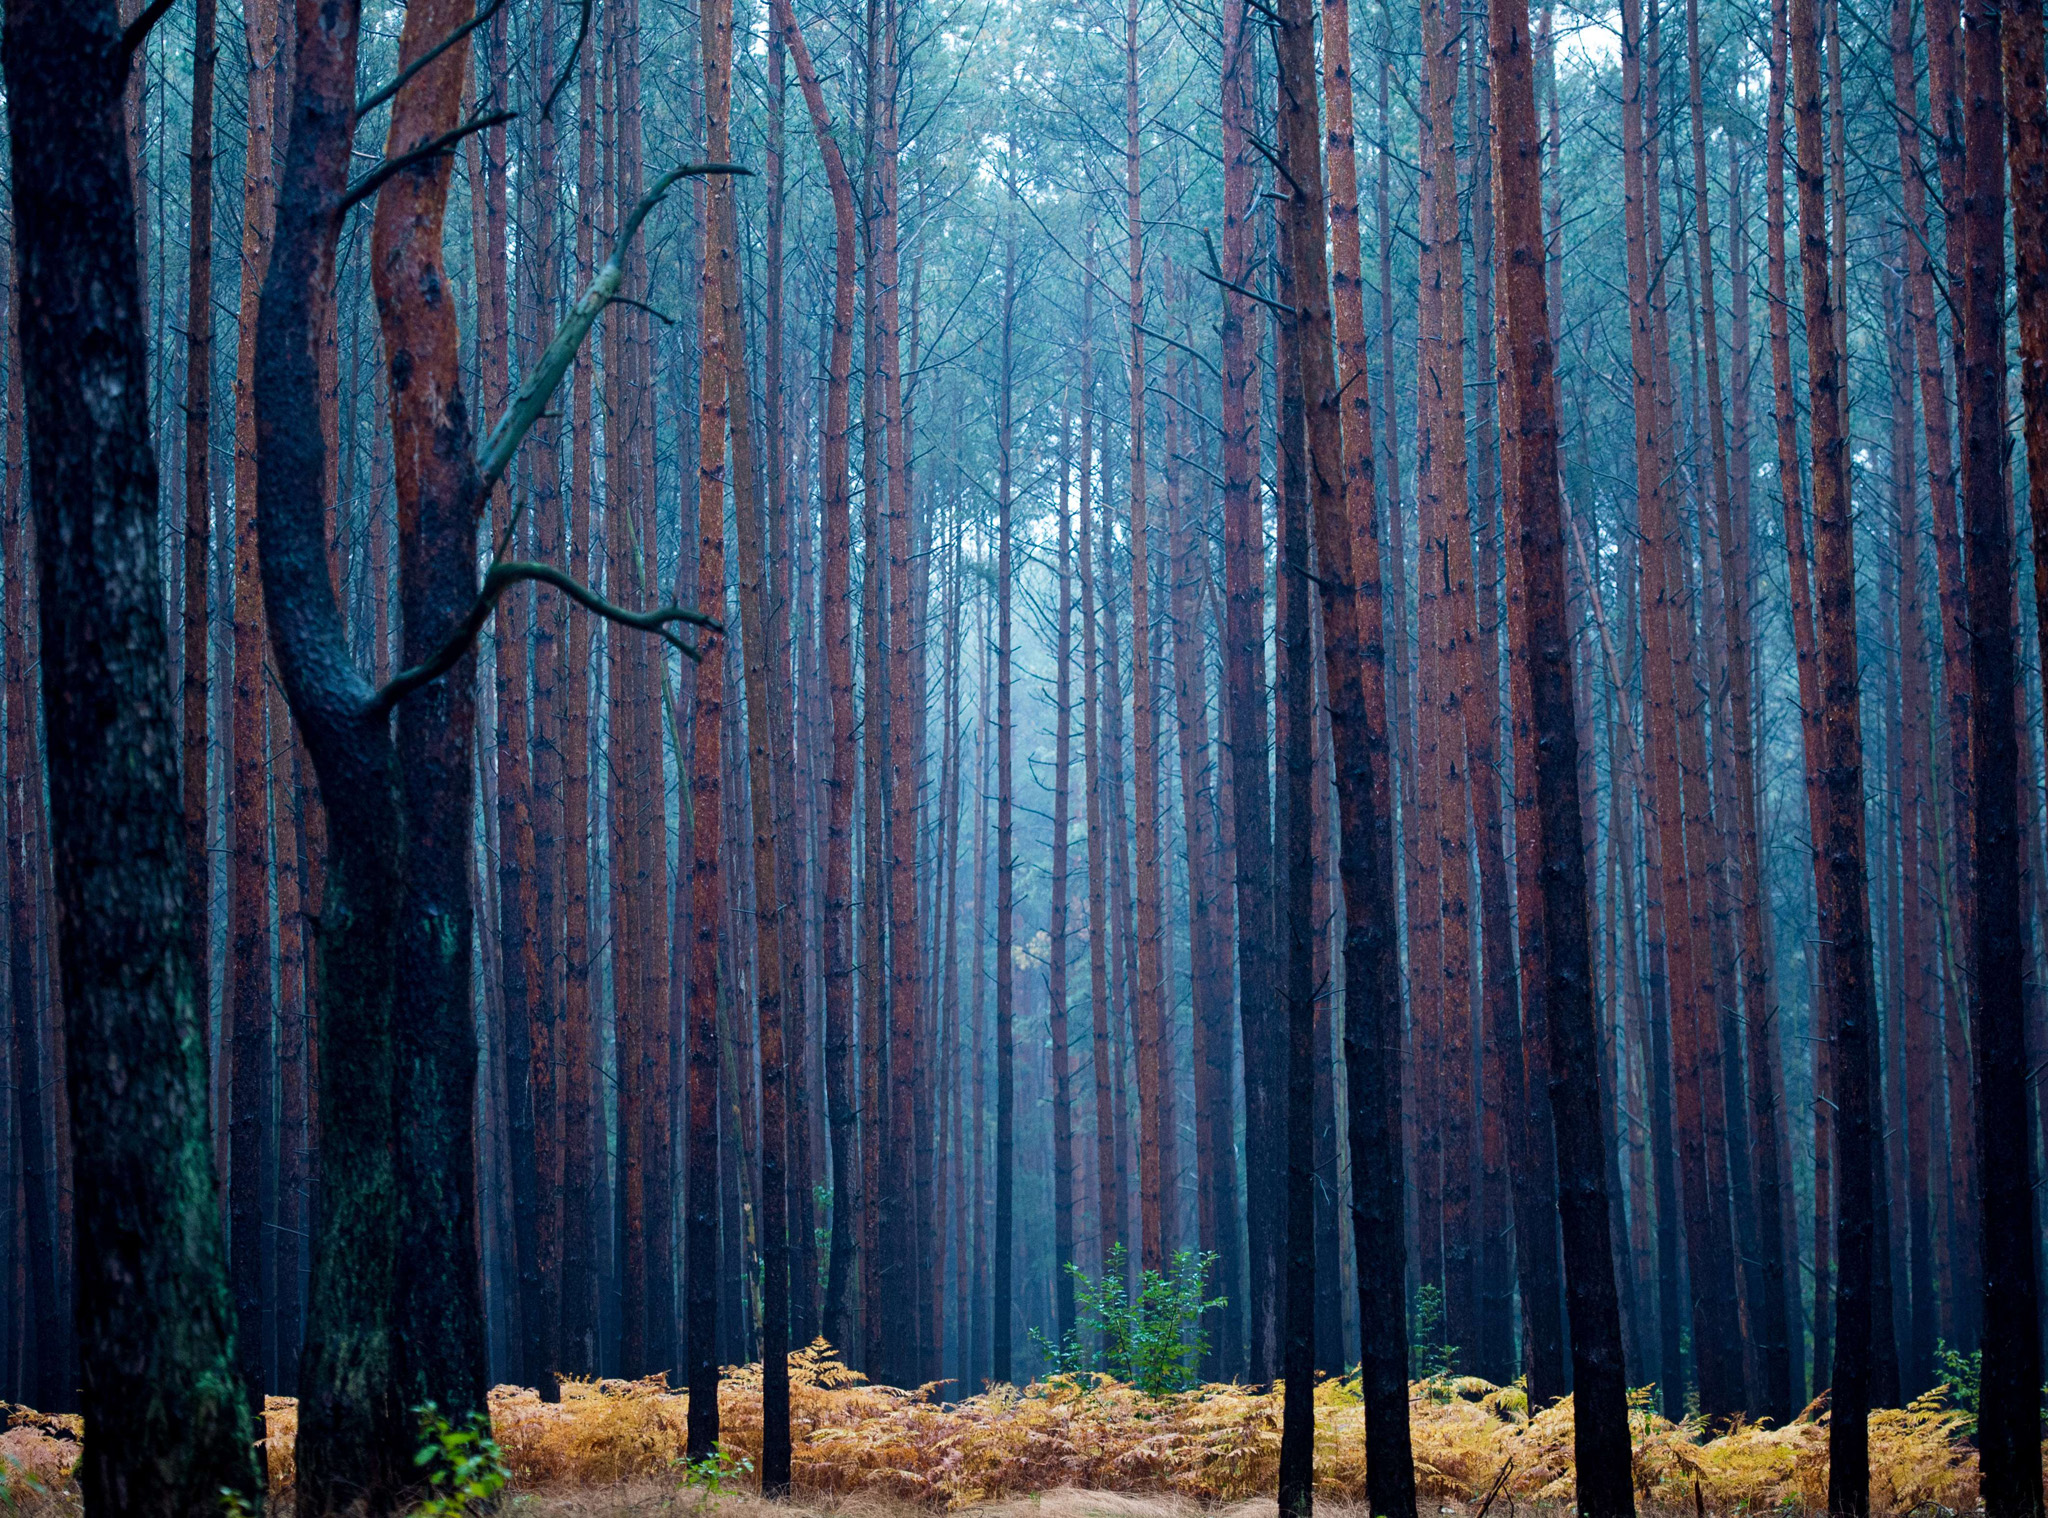 Pale light hangs in a pine forest during a rainy autumn morning